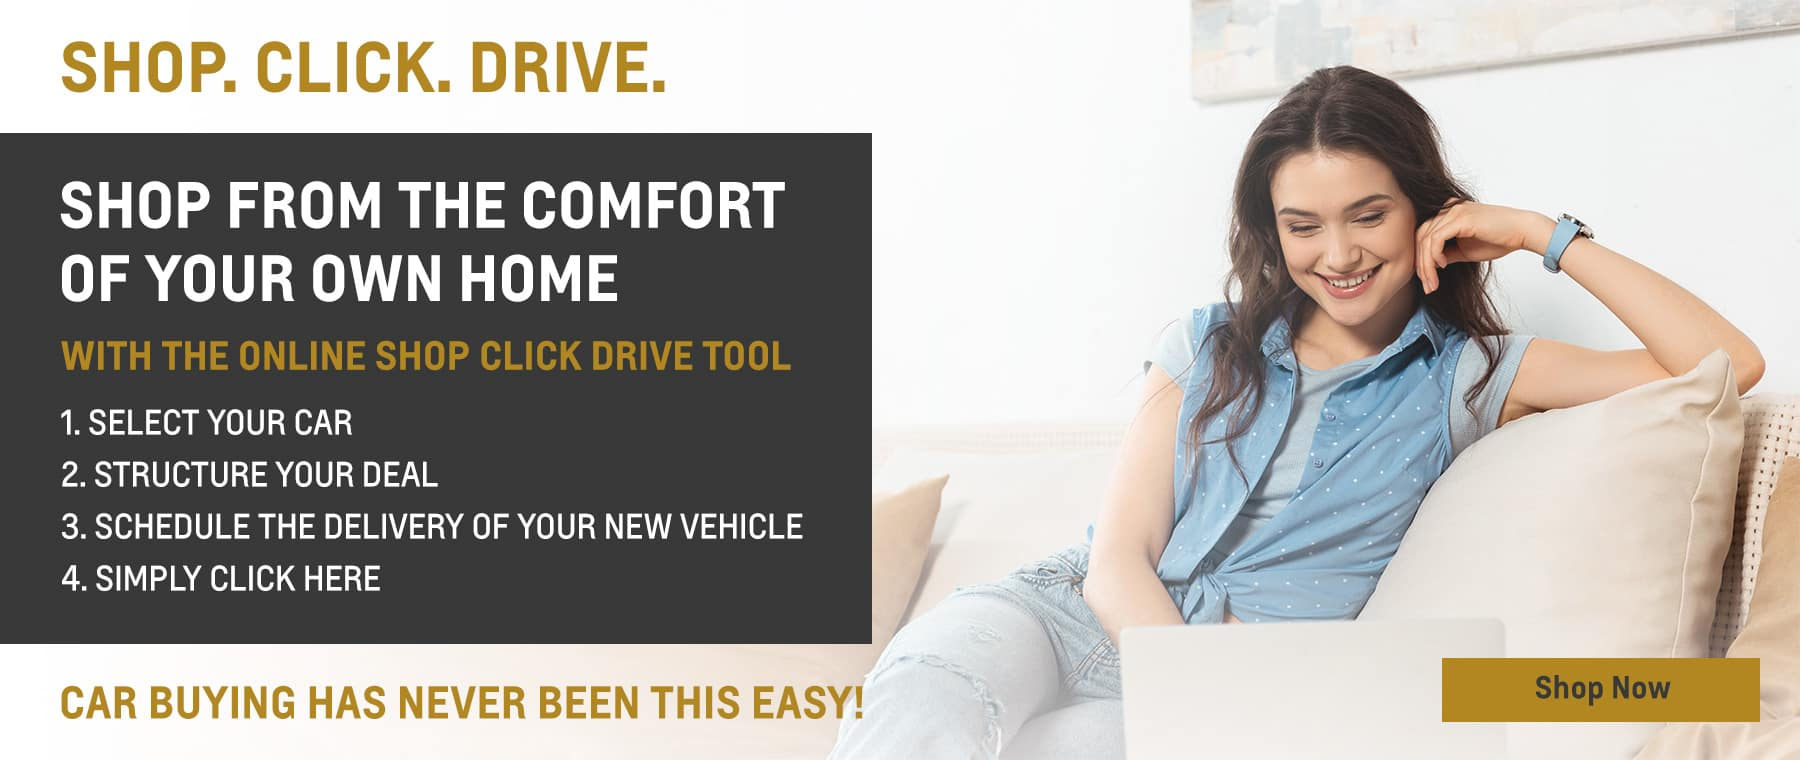 SHOP.CLICK.DRIVE. SHOP FROM THE COMFORT OF YOUR OWN HOME WITH THE ONLINE SHOP CLICK DRIVE TOOL. 1.SELECT YOUR CAR 2. STRUCTURE YOUR DEAL 3. SCHEDULE THE DELIVERY OF YOUR NEW VEHICLE 4. SIMPLY CLICK HERE CAR BUYING HAS NEVER BEEN THIS EASY!